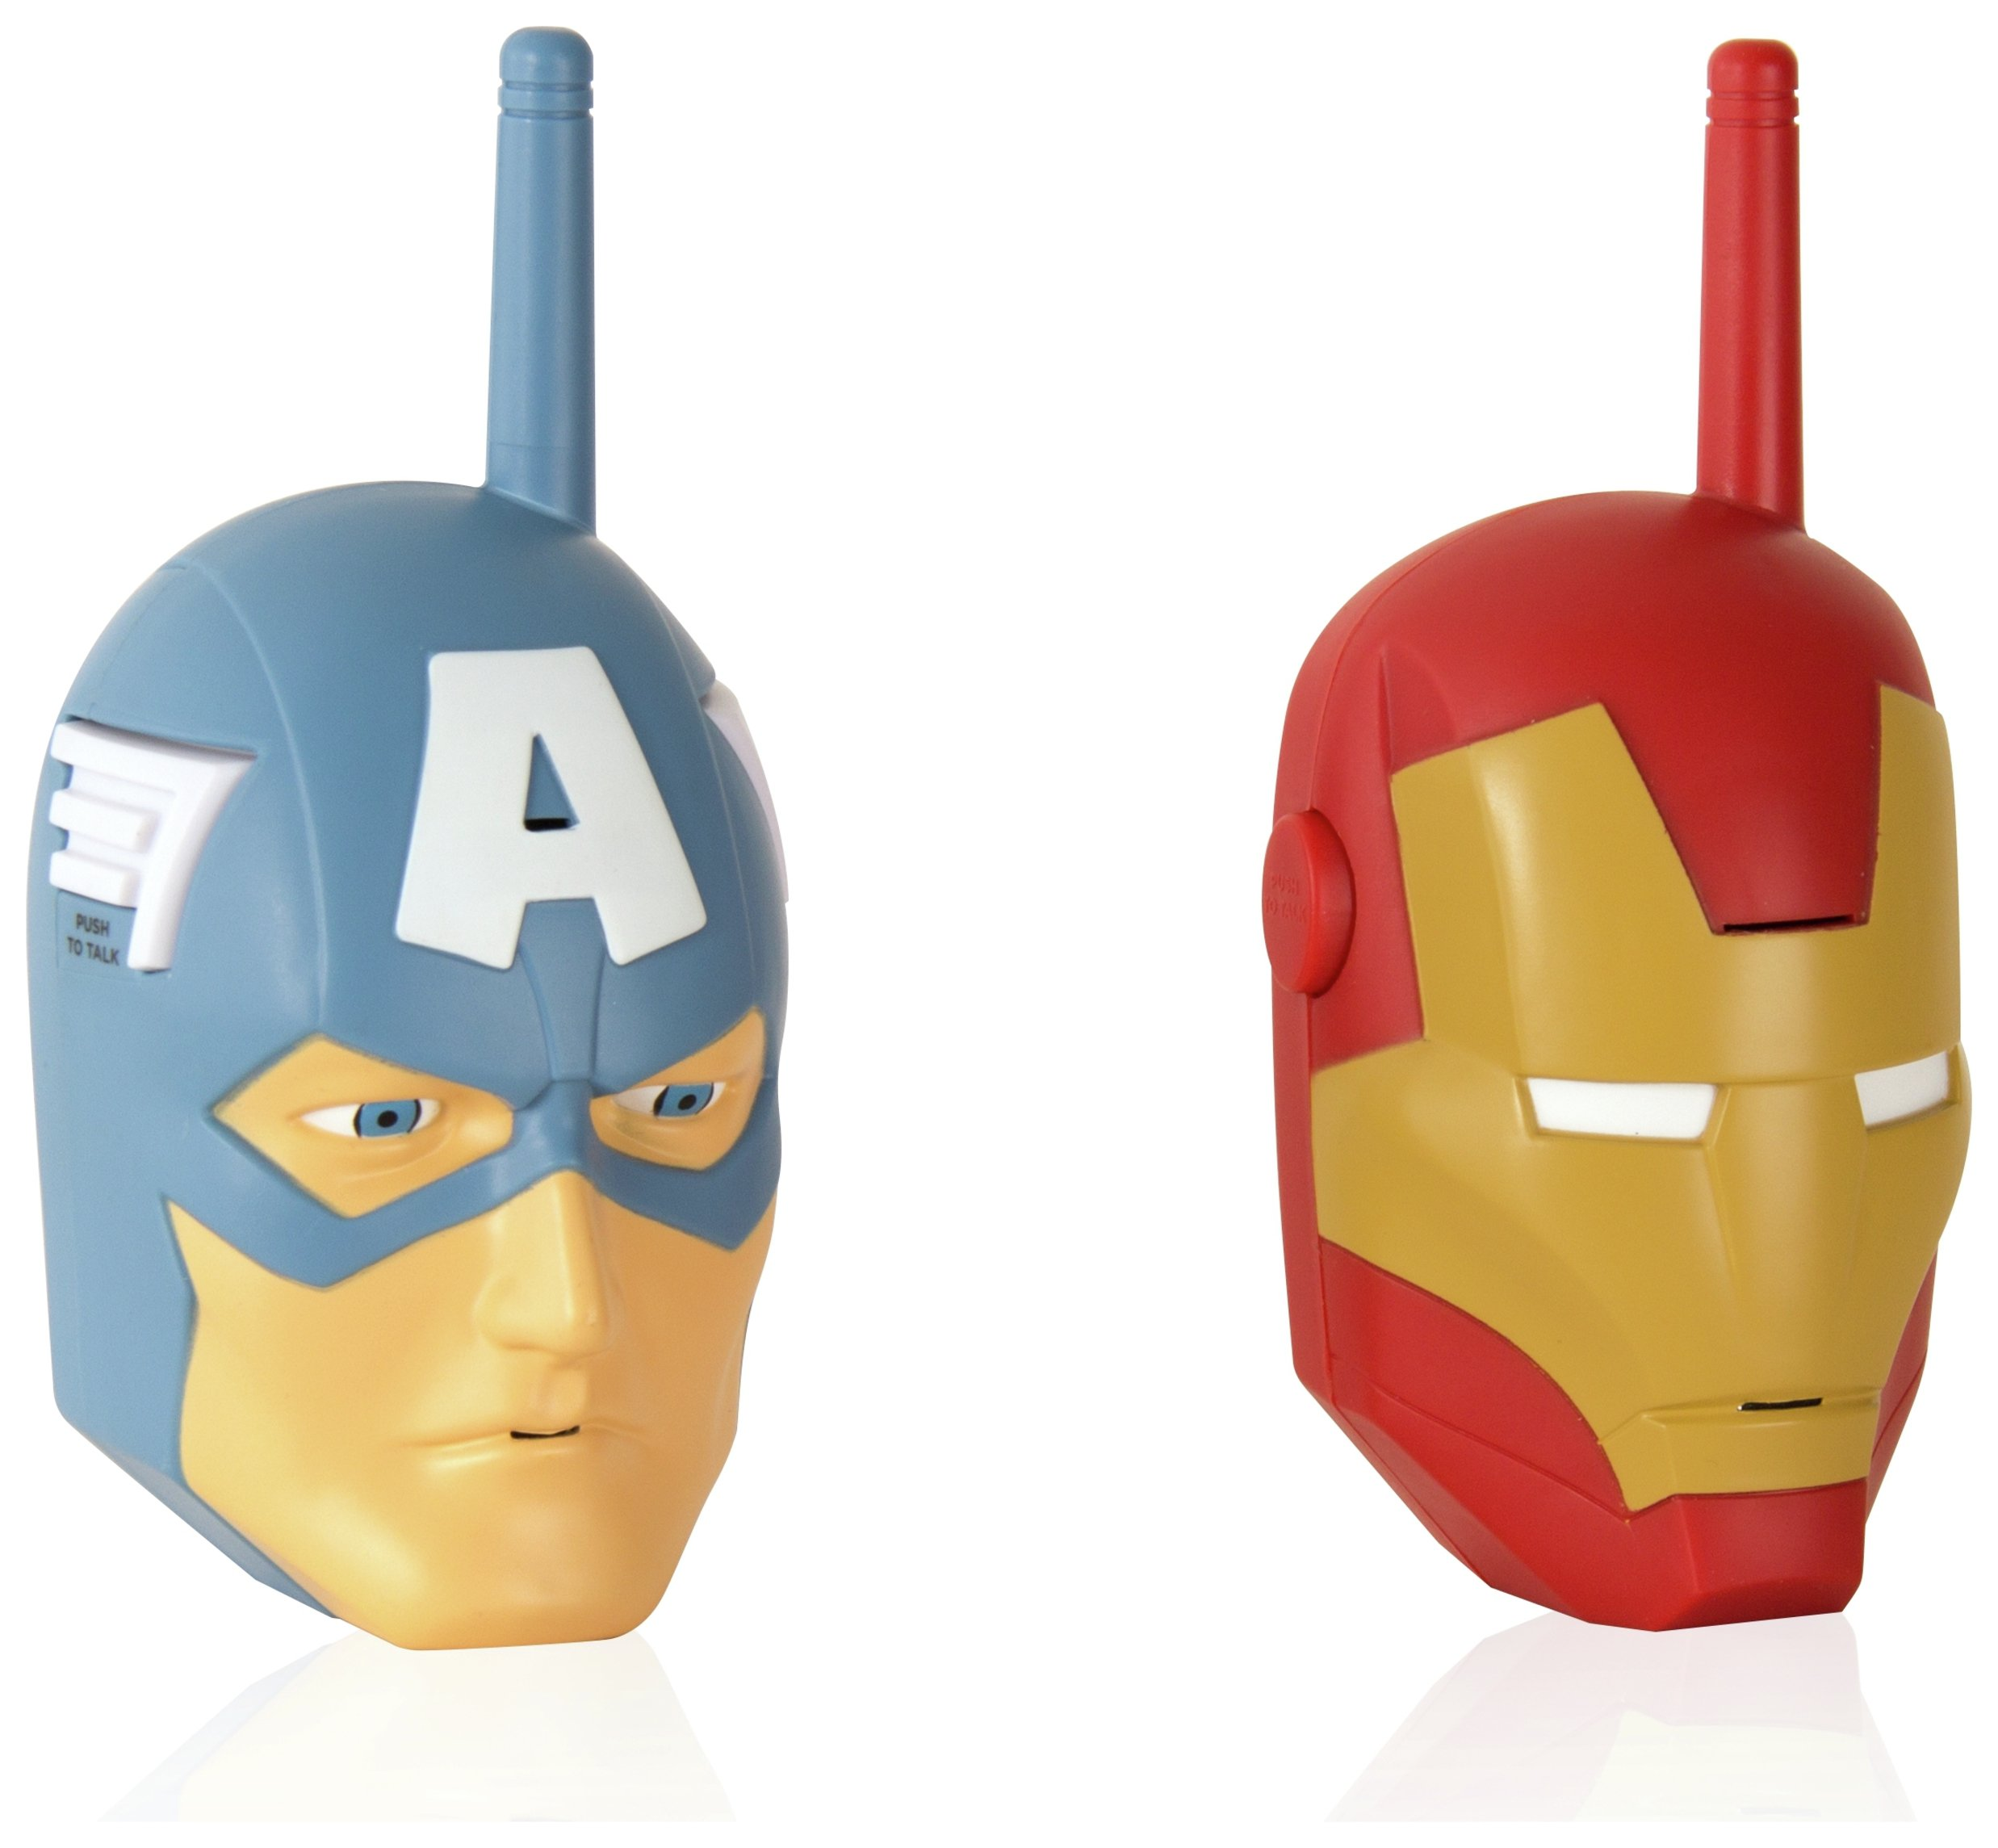 Image of Avengers Walkie Talkies.